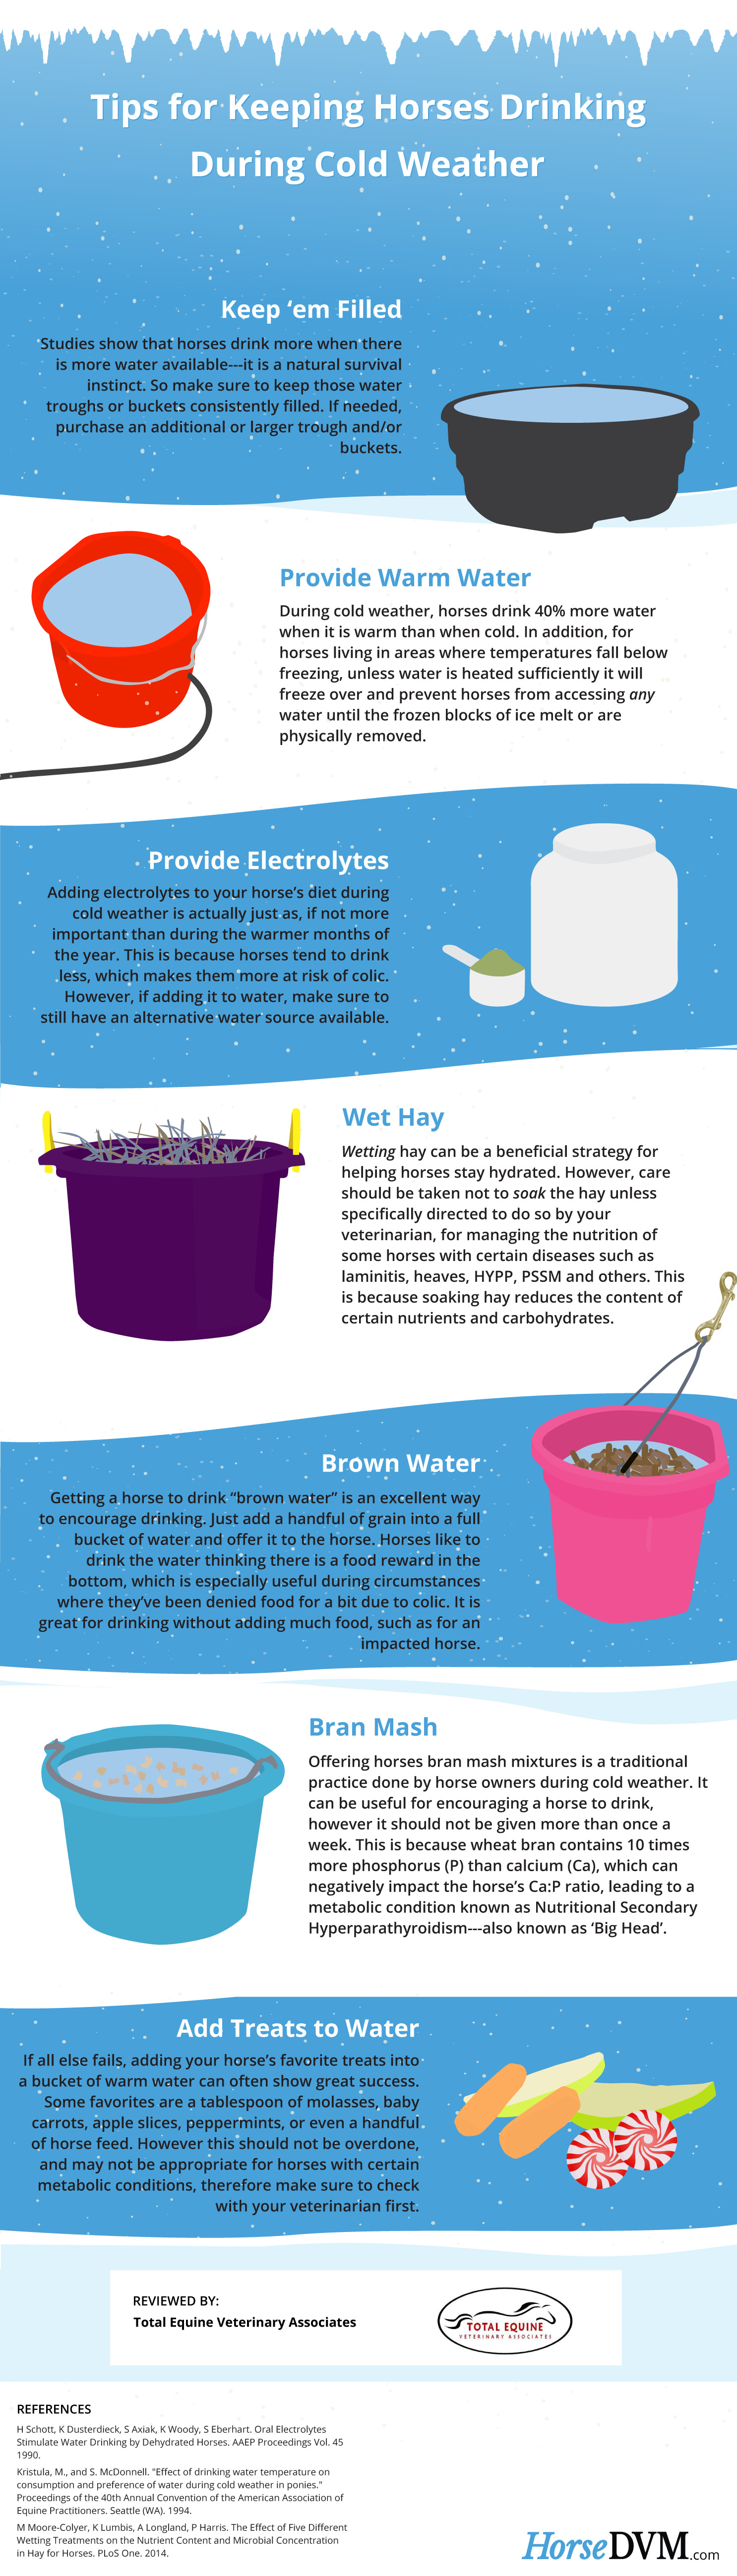 How to Keep Horses Hydrated in Cold Weather - Infographic